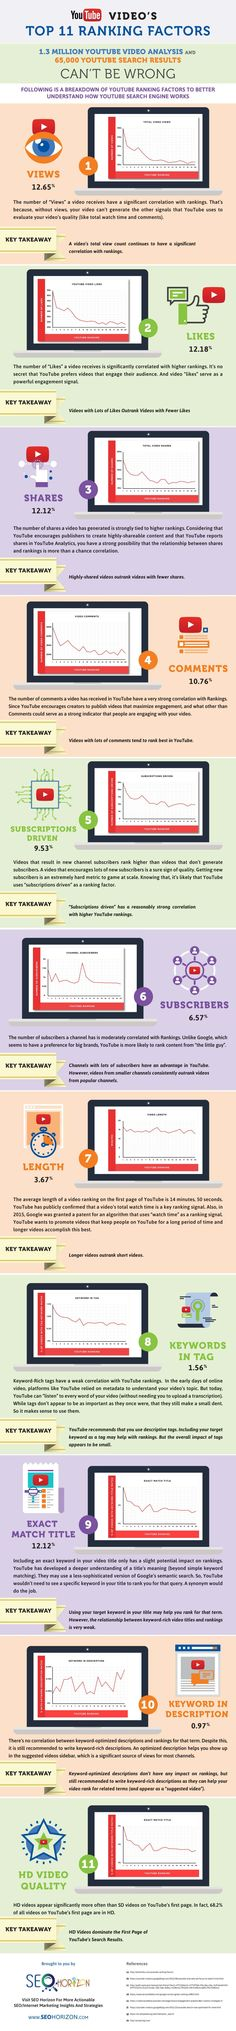 infographie-youtube-